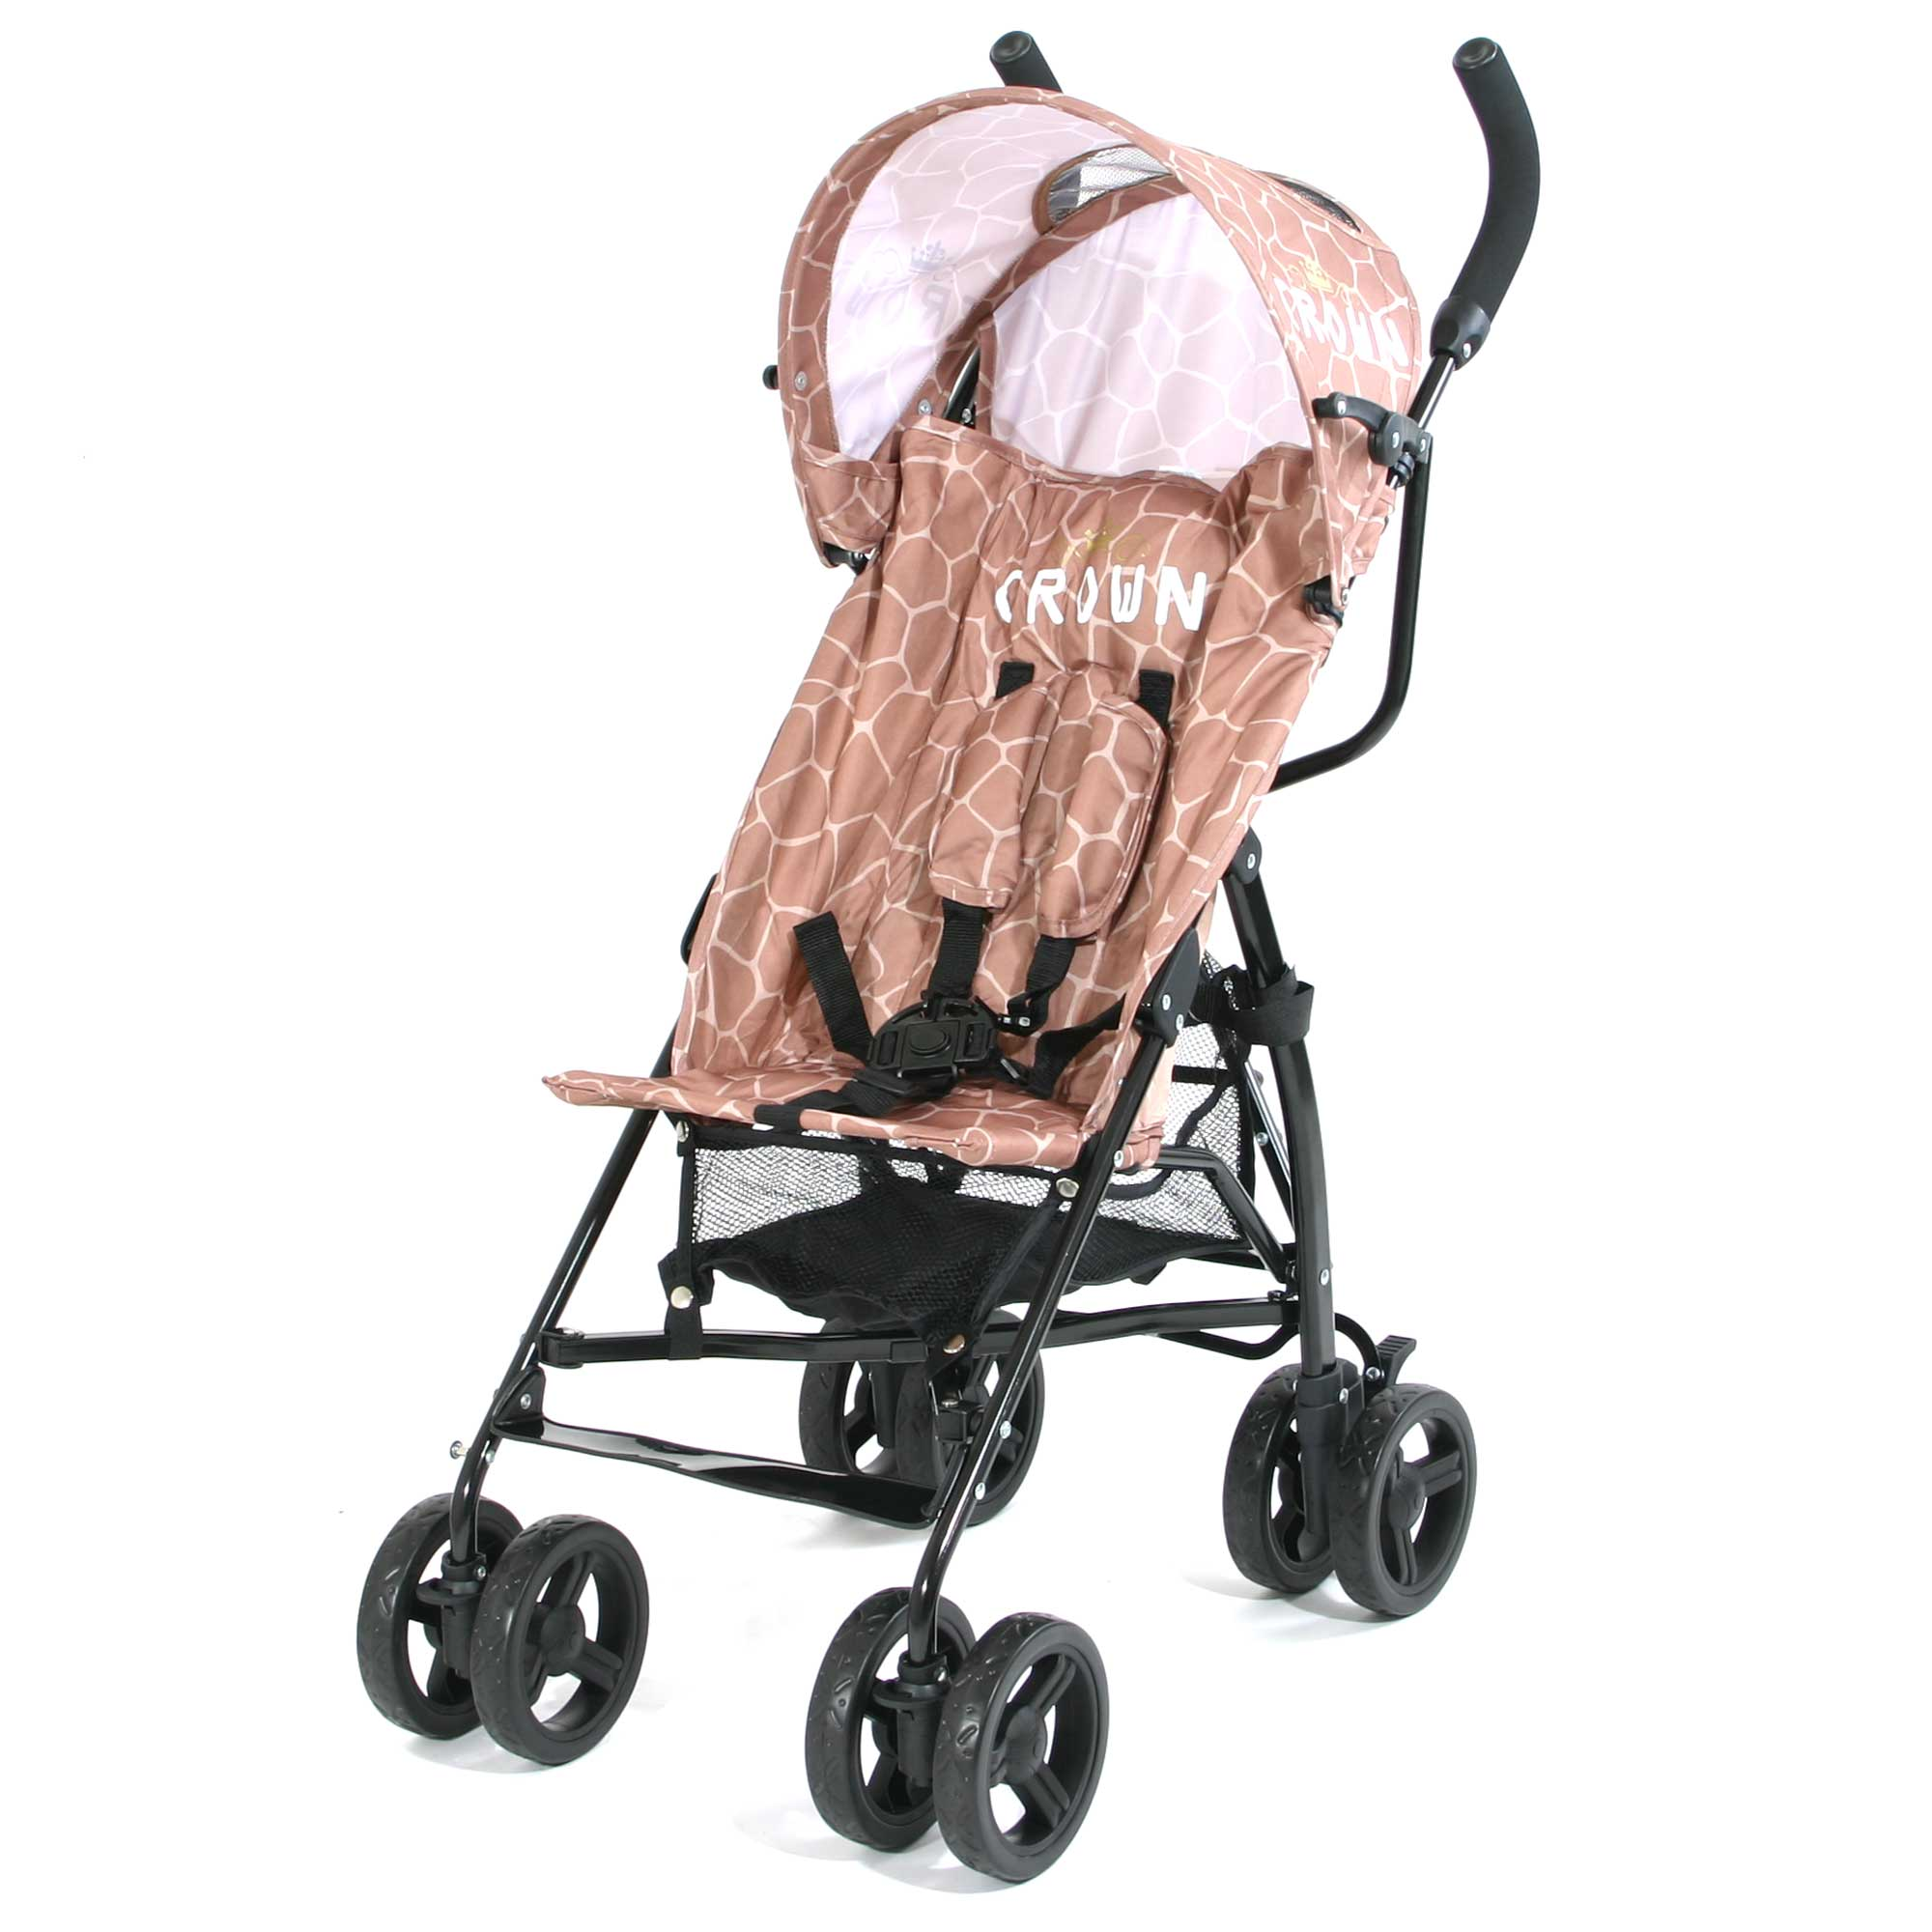 Crown Buggy Räder Crown St120 Buggy Kinderwagen Giraffe Braun Zawione